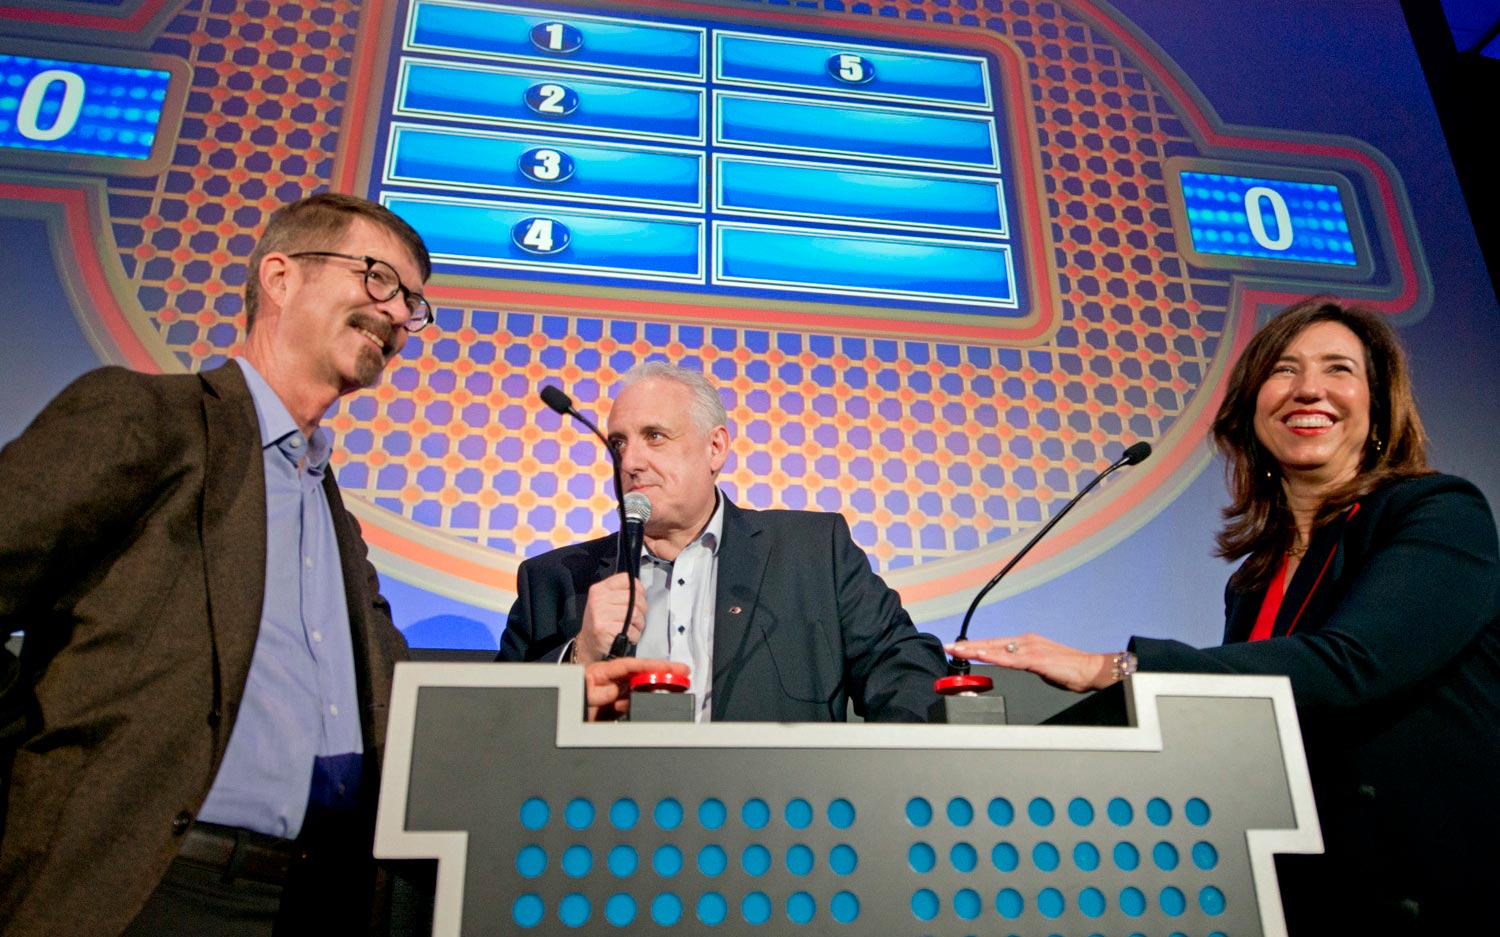 Carnival Cruise Passengers Can Battle It Out in a Live Version of 'Family Feud'